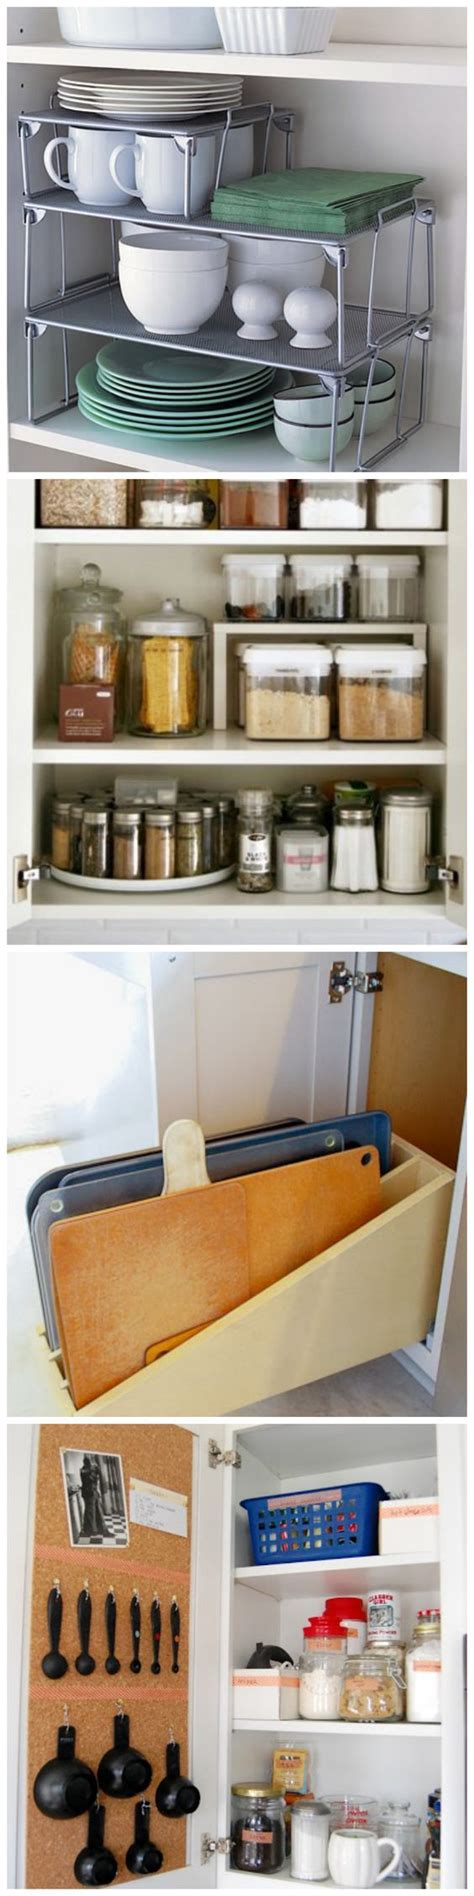 kitchen cabinets organizing ideas 1000 ideas about cabinet organizers on pinterest